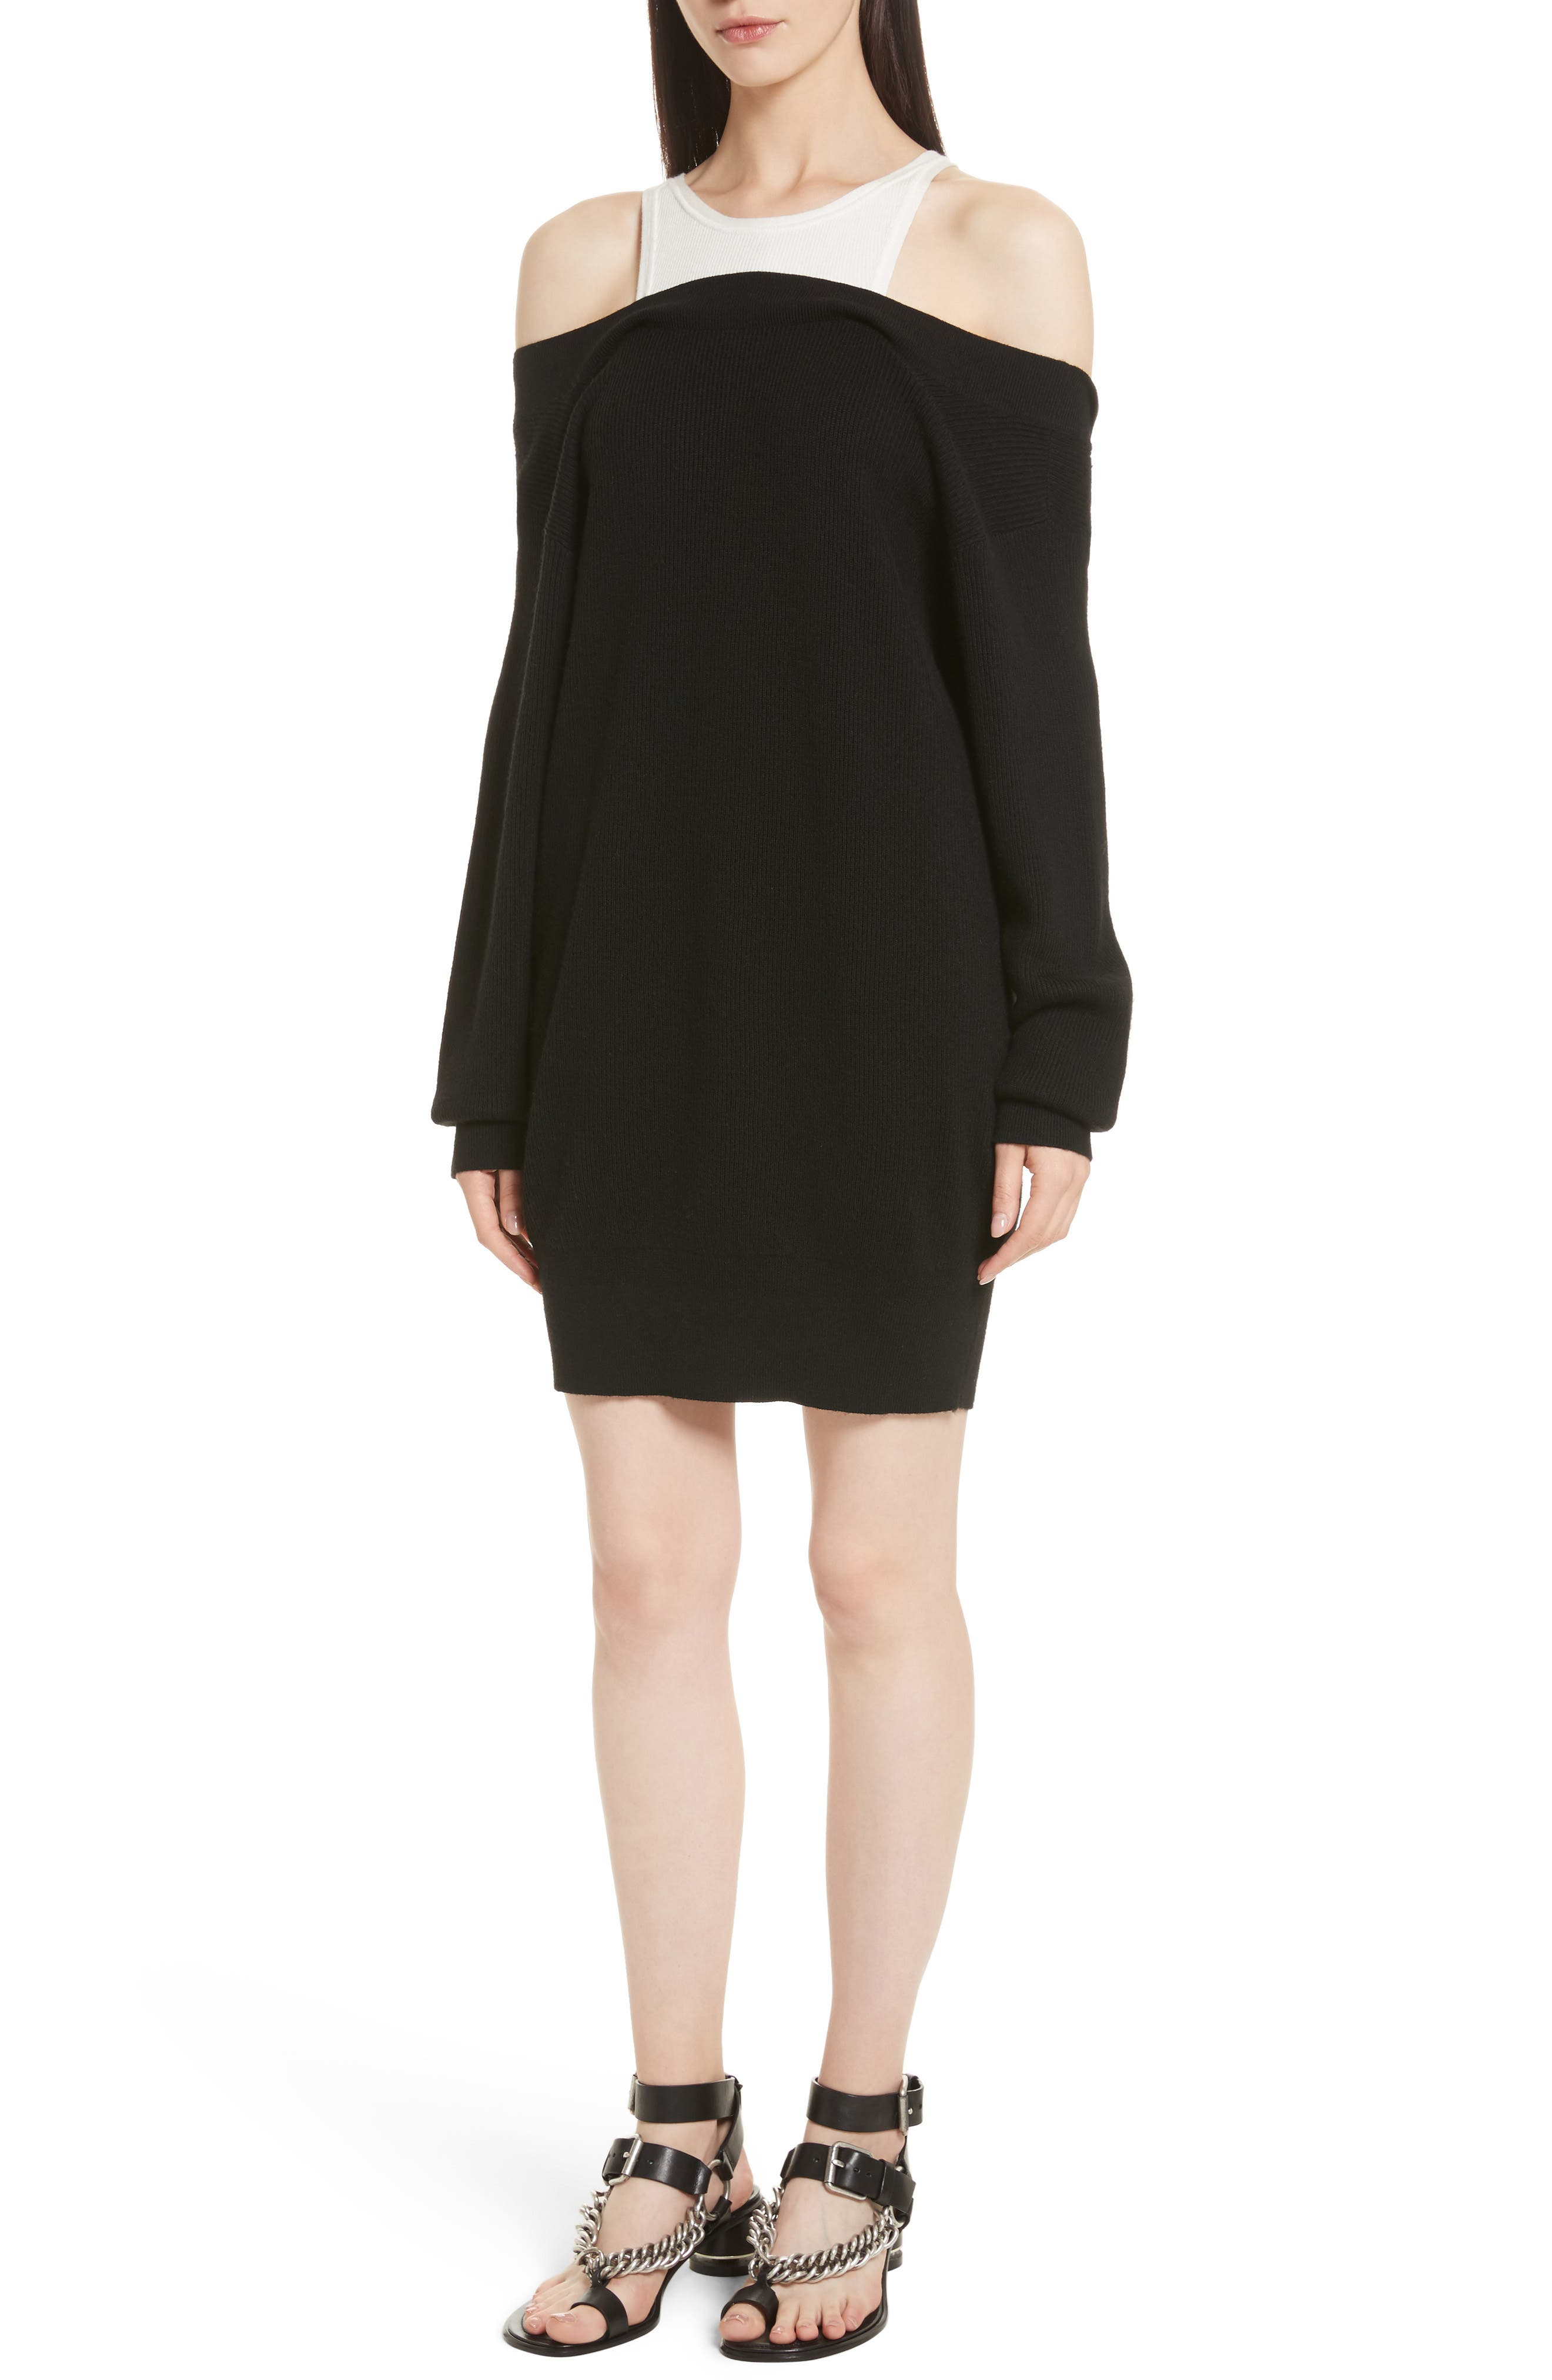 Alternate Image 1 Selected - T by Alexander Wang Bi-Layer Knit Dress with Inner Tank